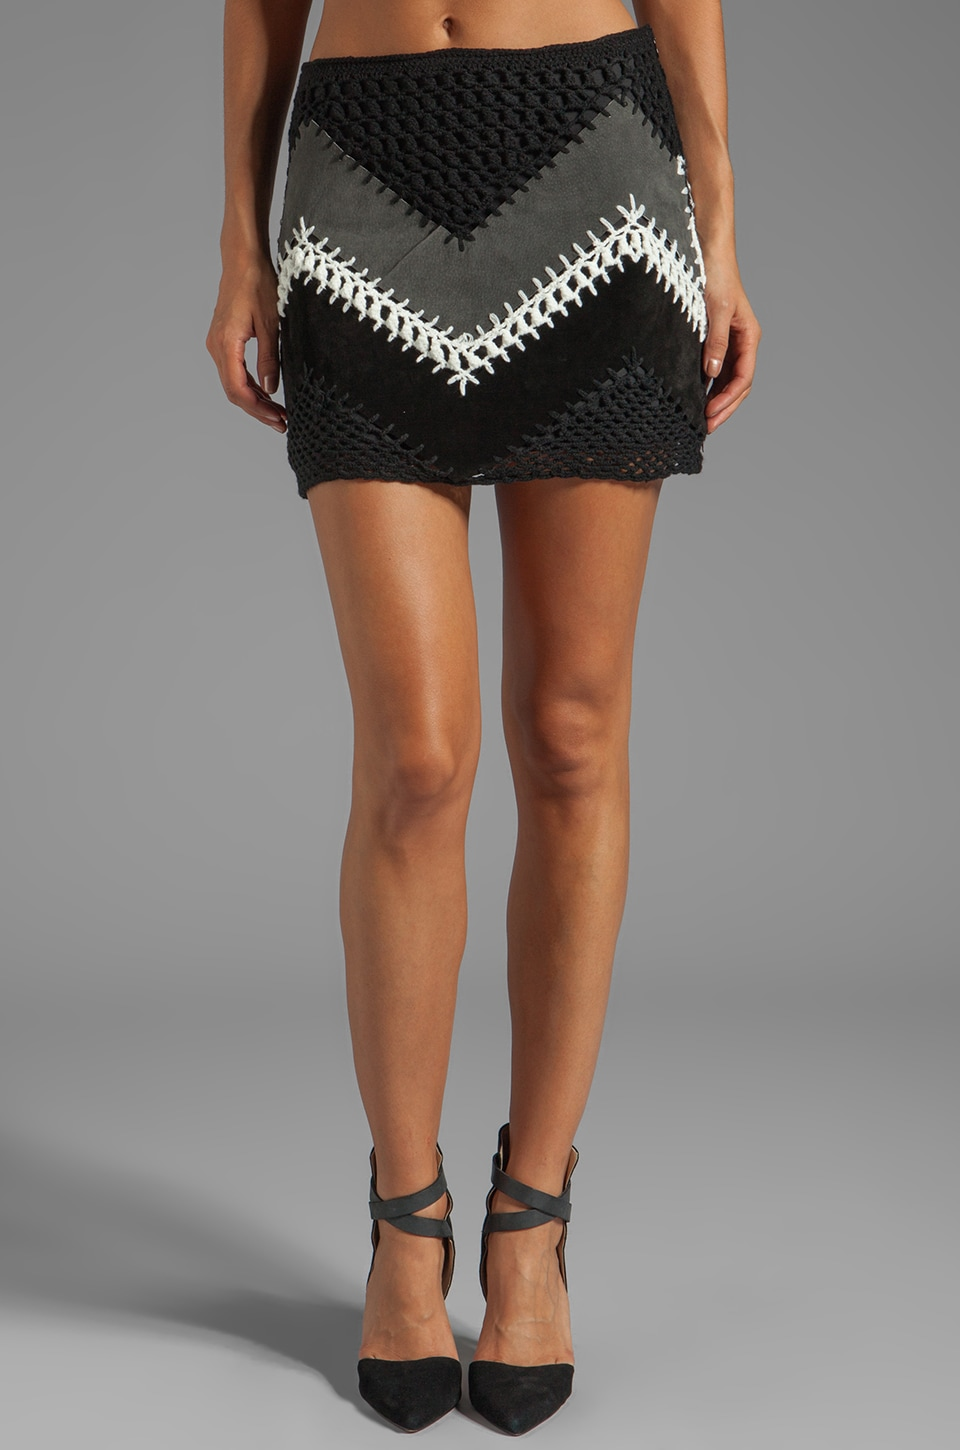 BB Dakota Cole Suede/Crochet A-Line Mini Skirt in Black